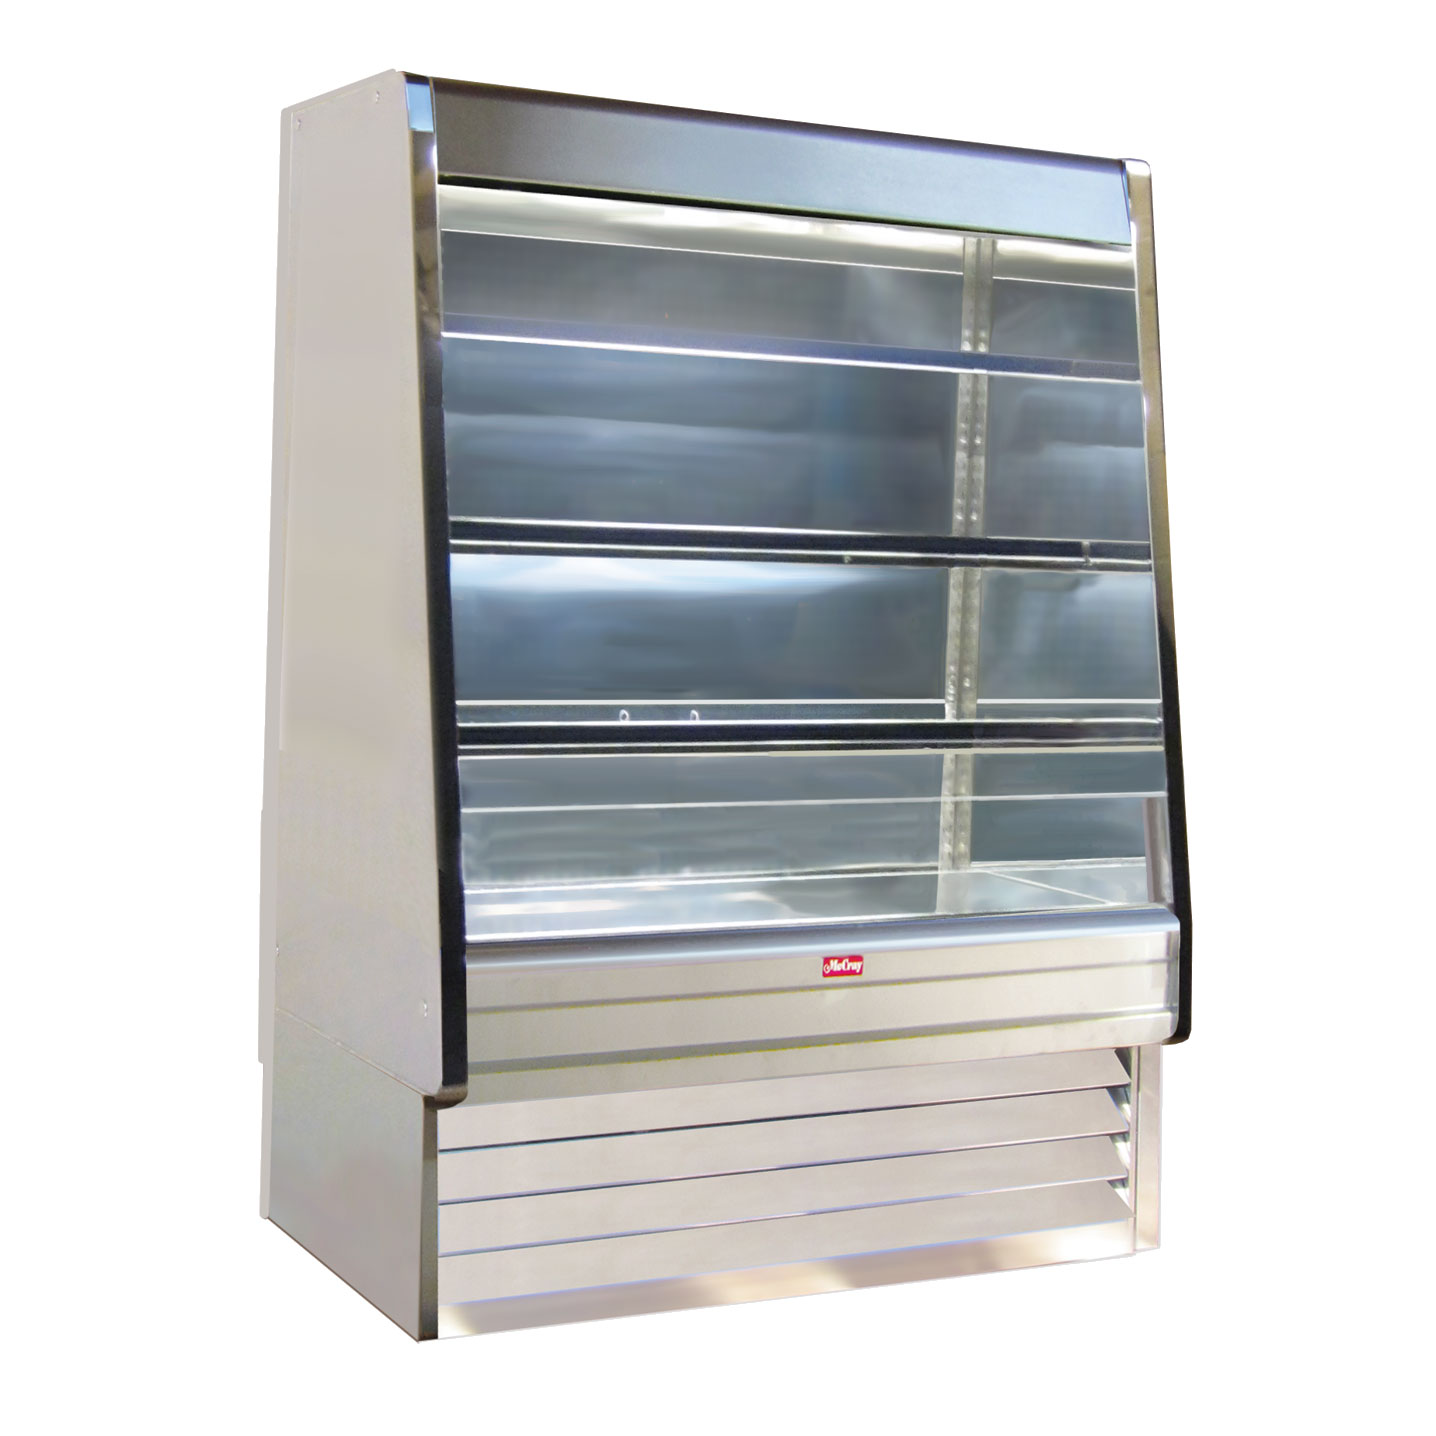 Howard-McCray R-OD30E-3-S-LED merchandiser, open refrigerated display